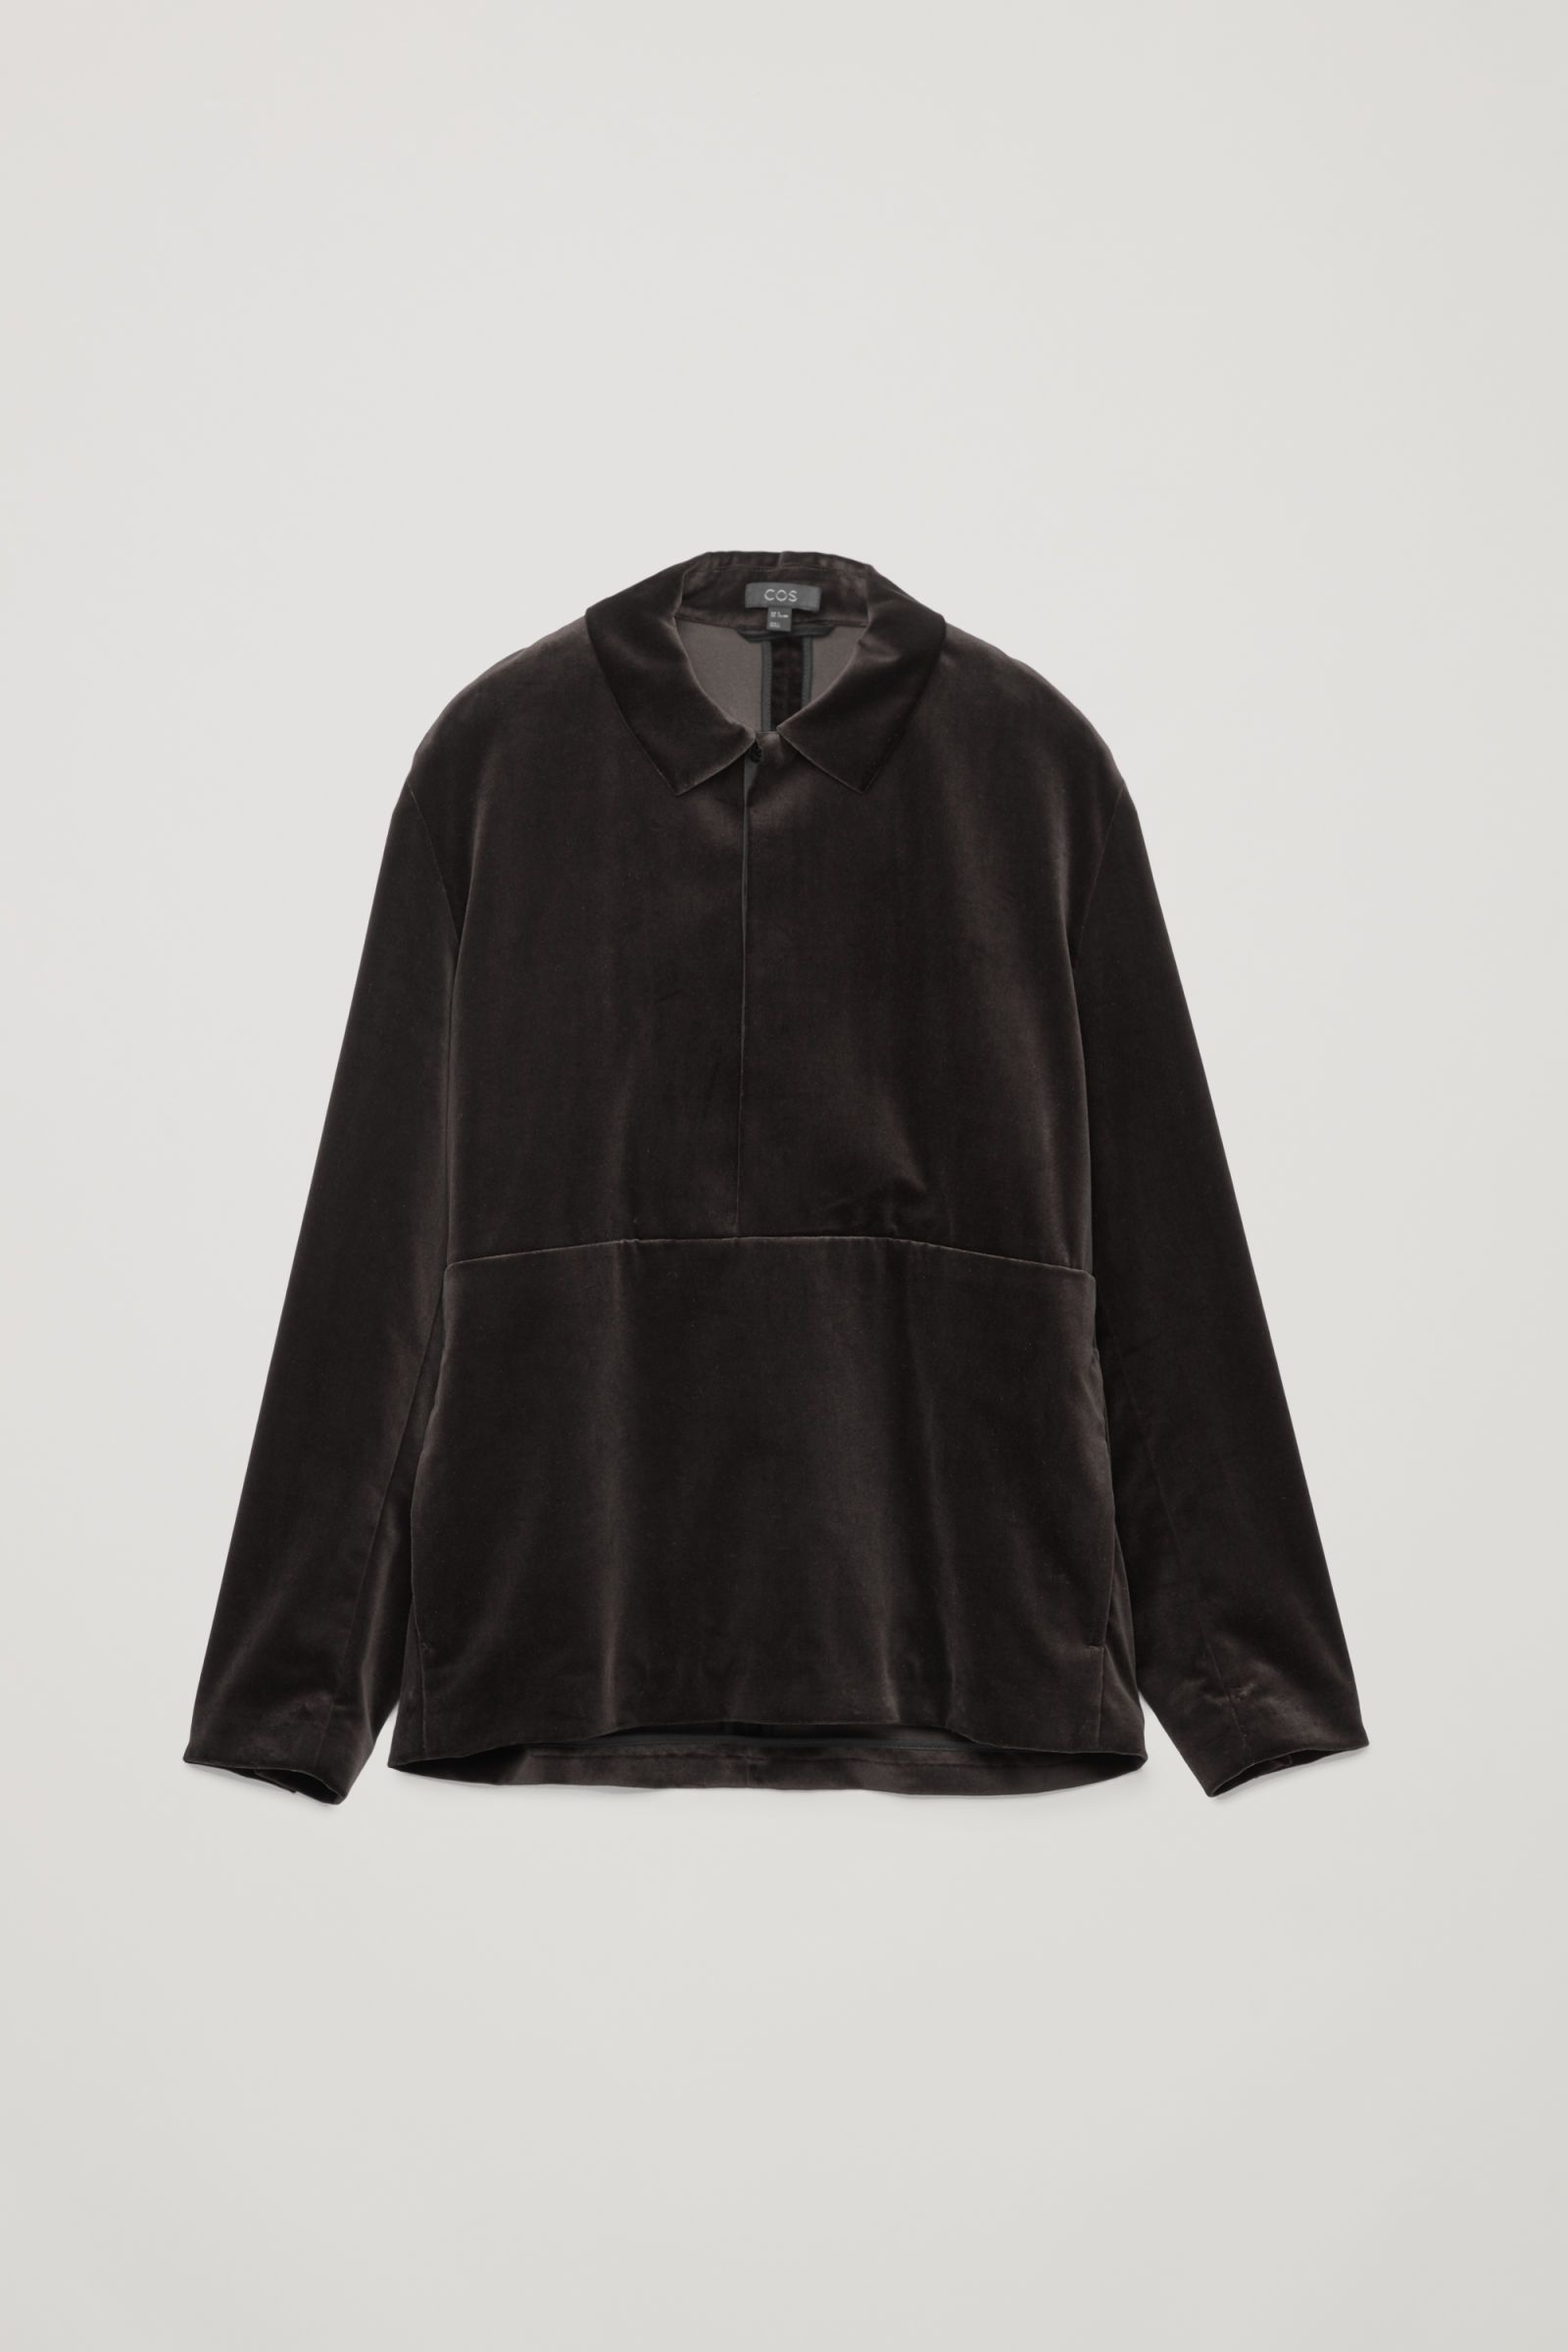 96fb3fc26d54 COS | Velvet pullover | Outfit Stuff in 2019 | Fashion, Shirt style ...